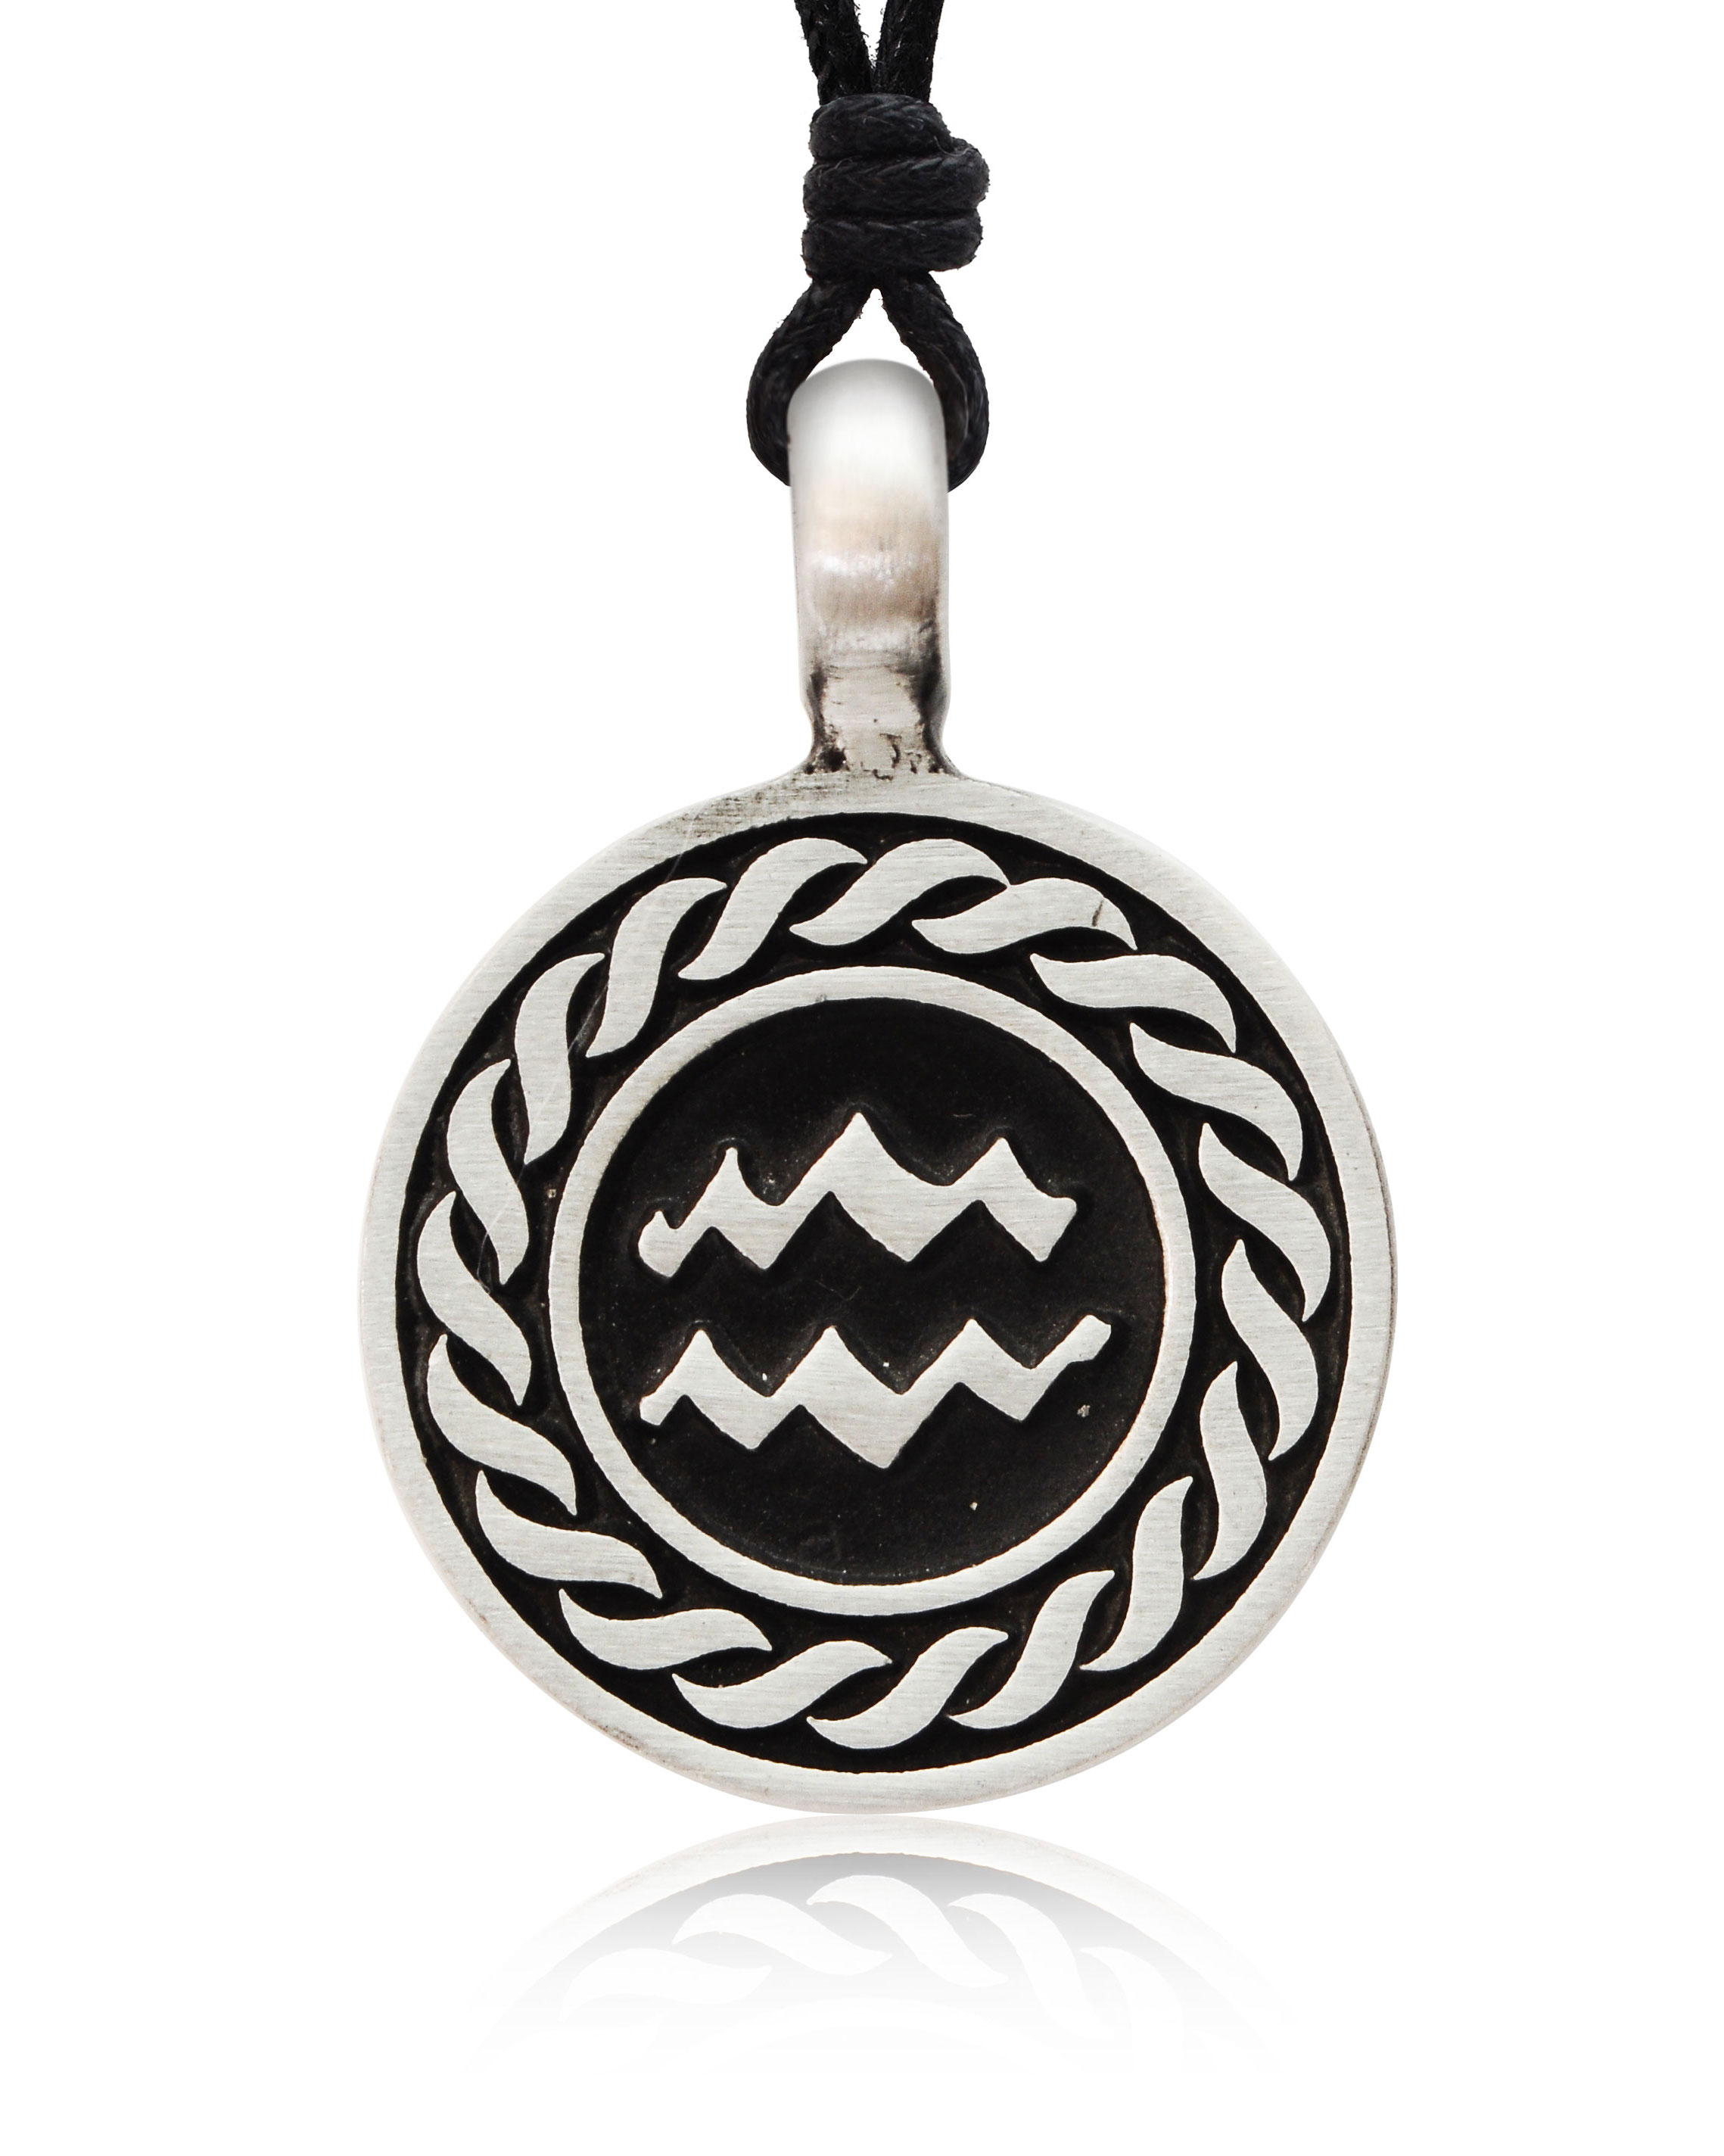 Astrology Sign Horoscope Silver Pewter Charm Necklace ... - photo#25